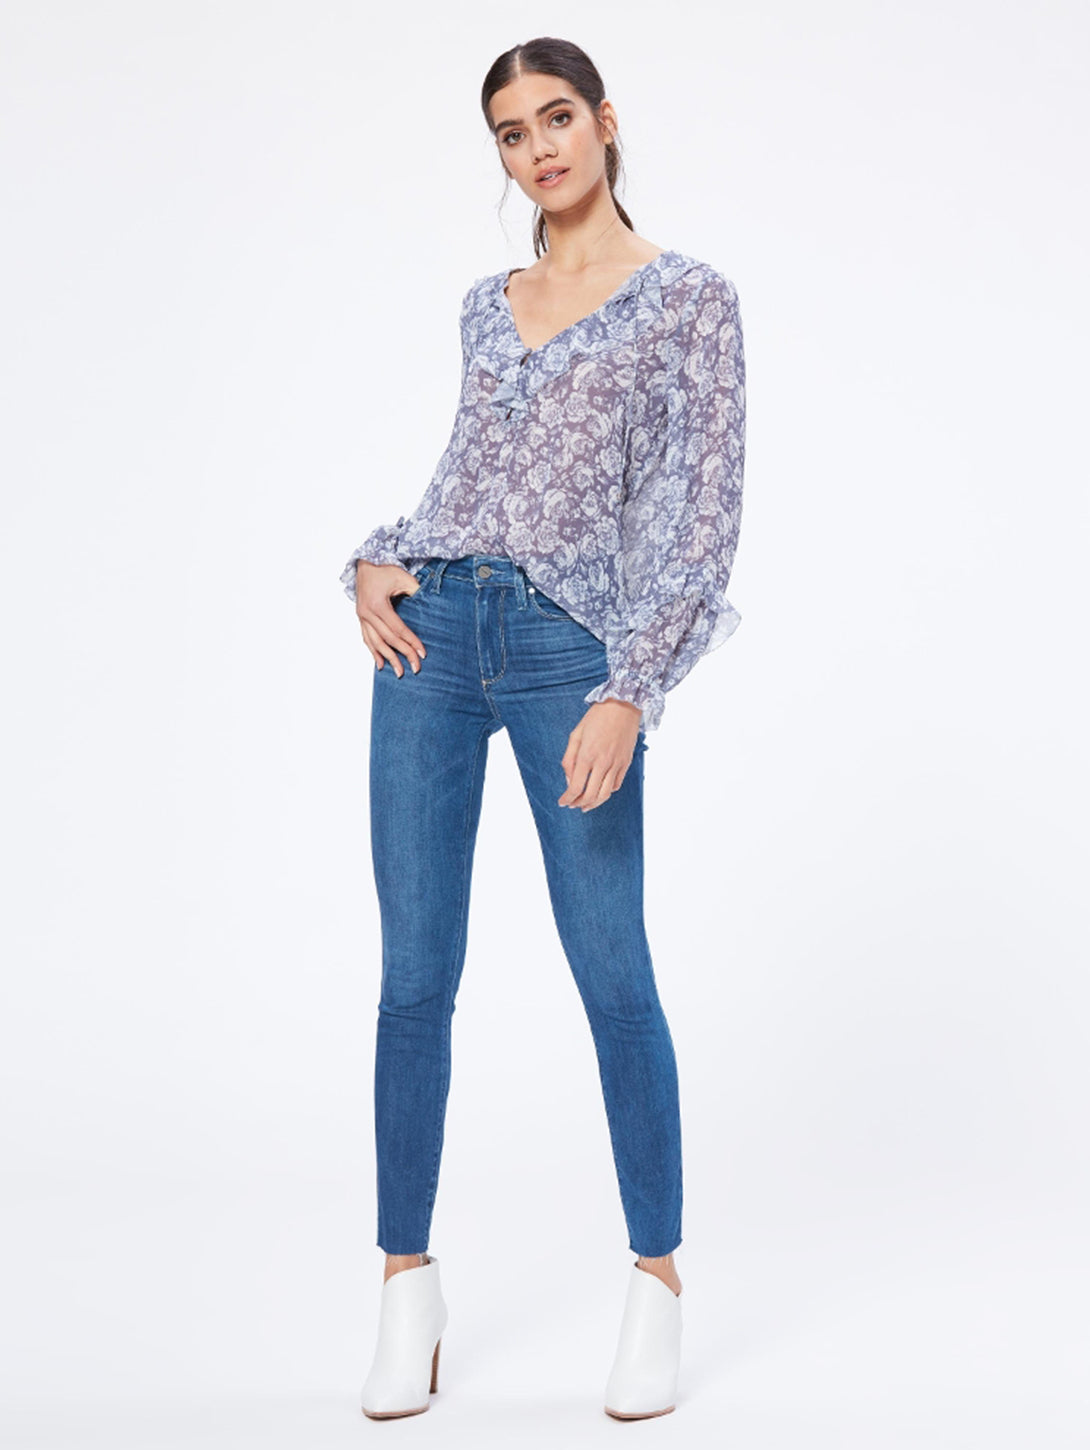 Hoxton Ankle Raw Hem Skinny Jean - Alyeska-Paige-Over the Rainbow